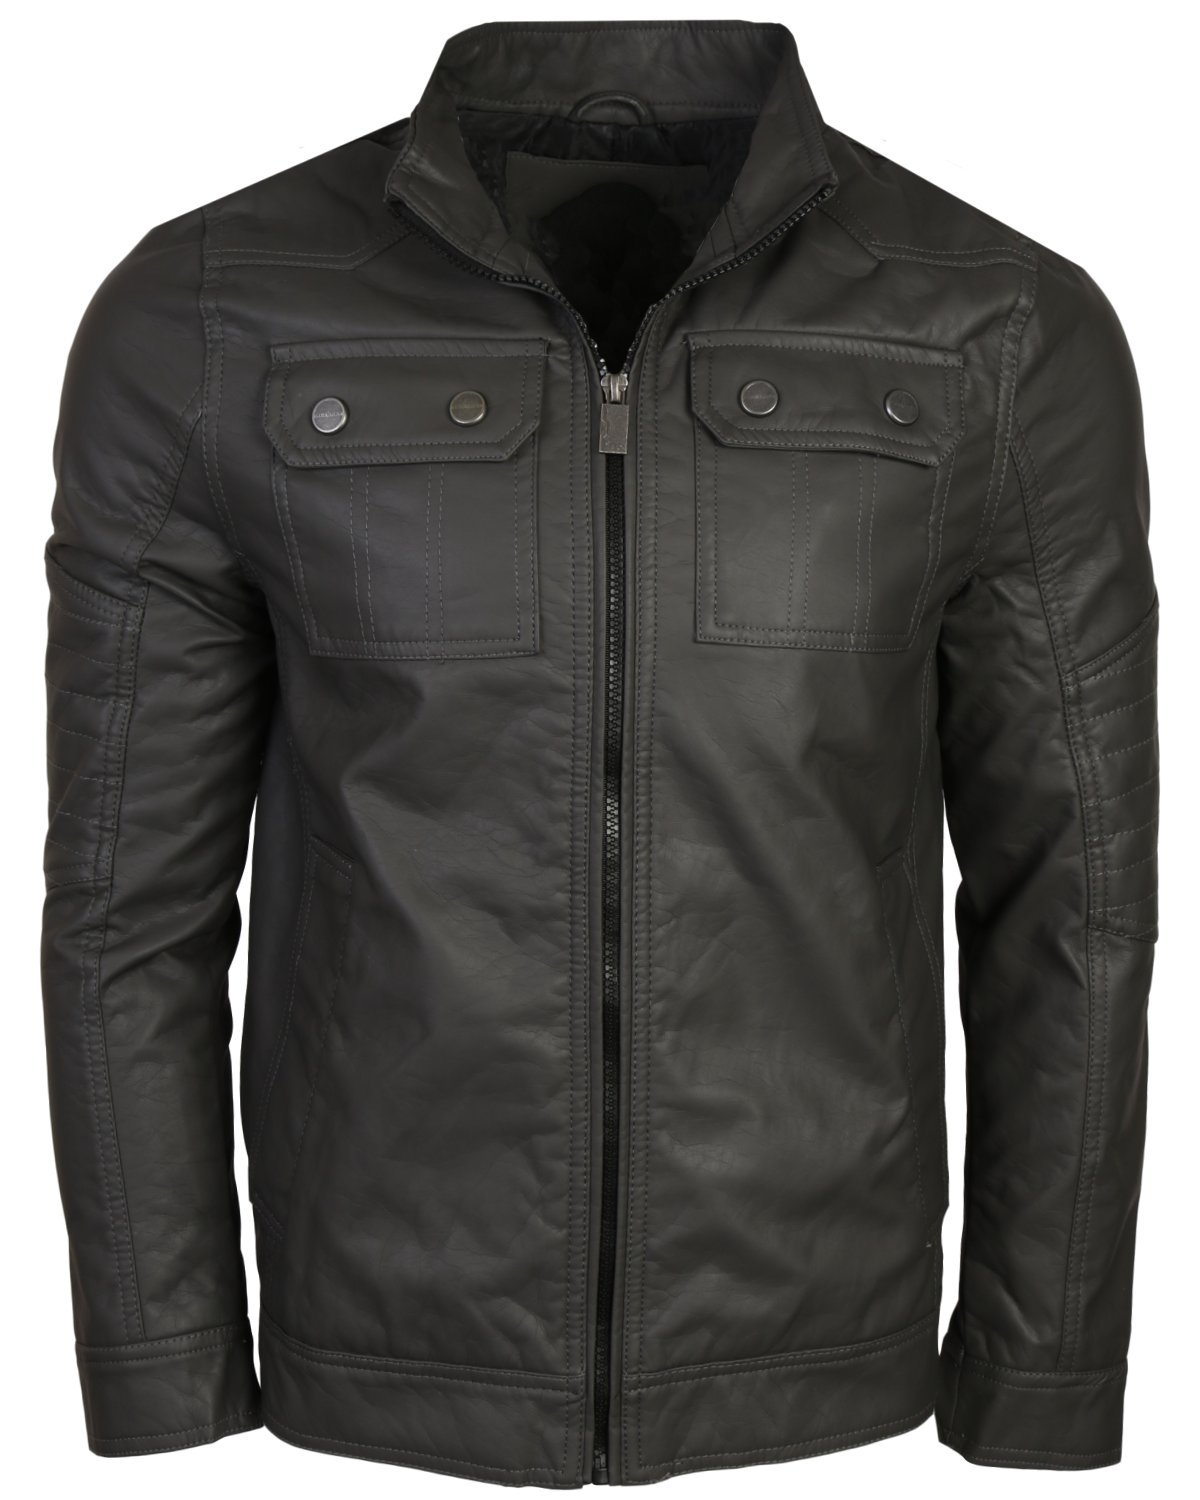 Urban Republic Men's Faux Leather Jacket, Dark Charcoal, Medium'